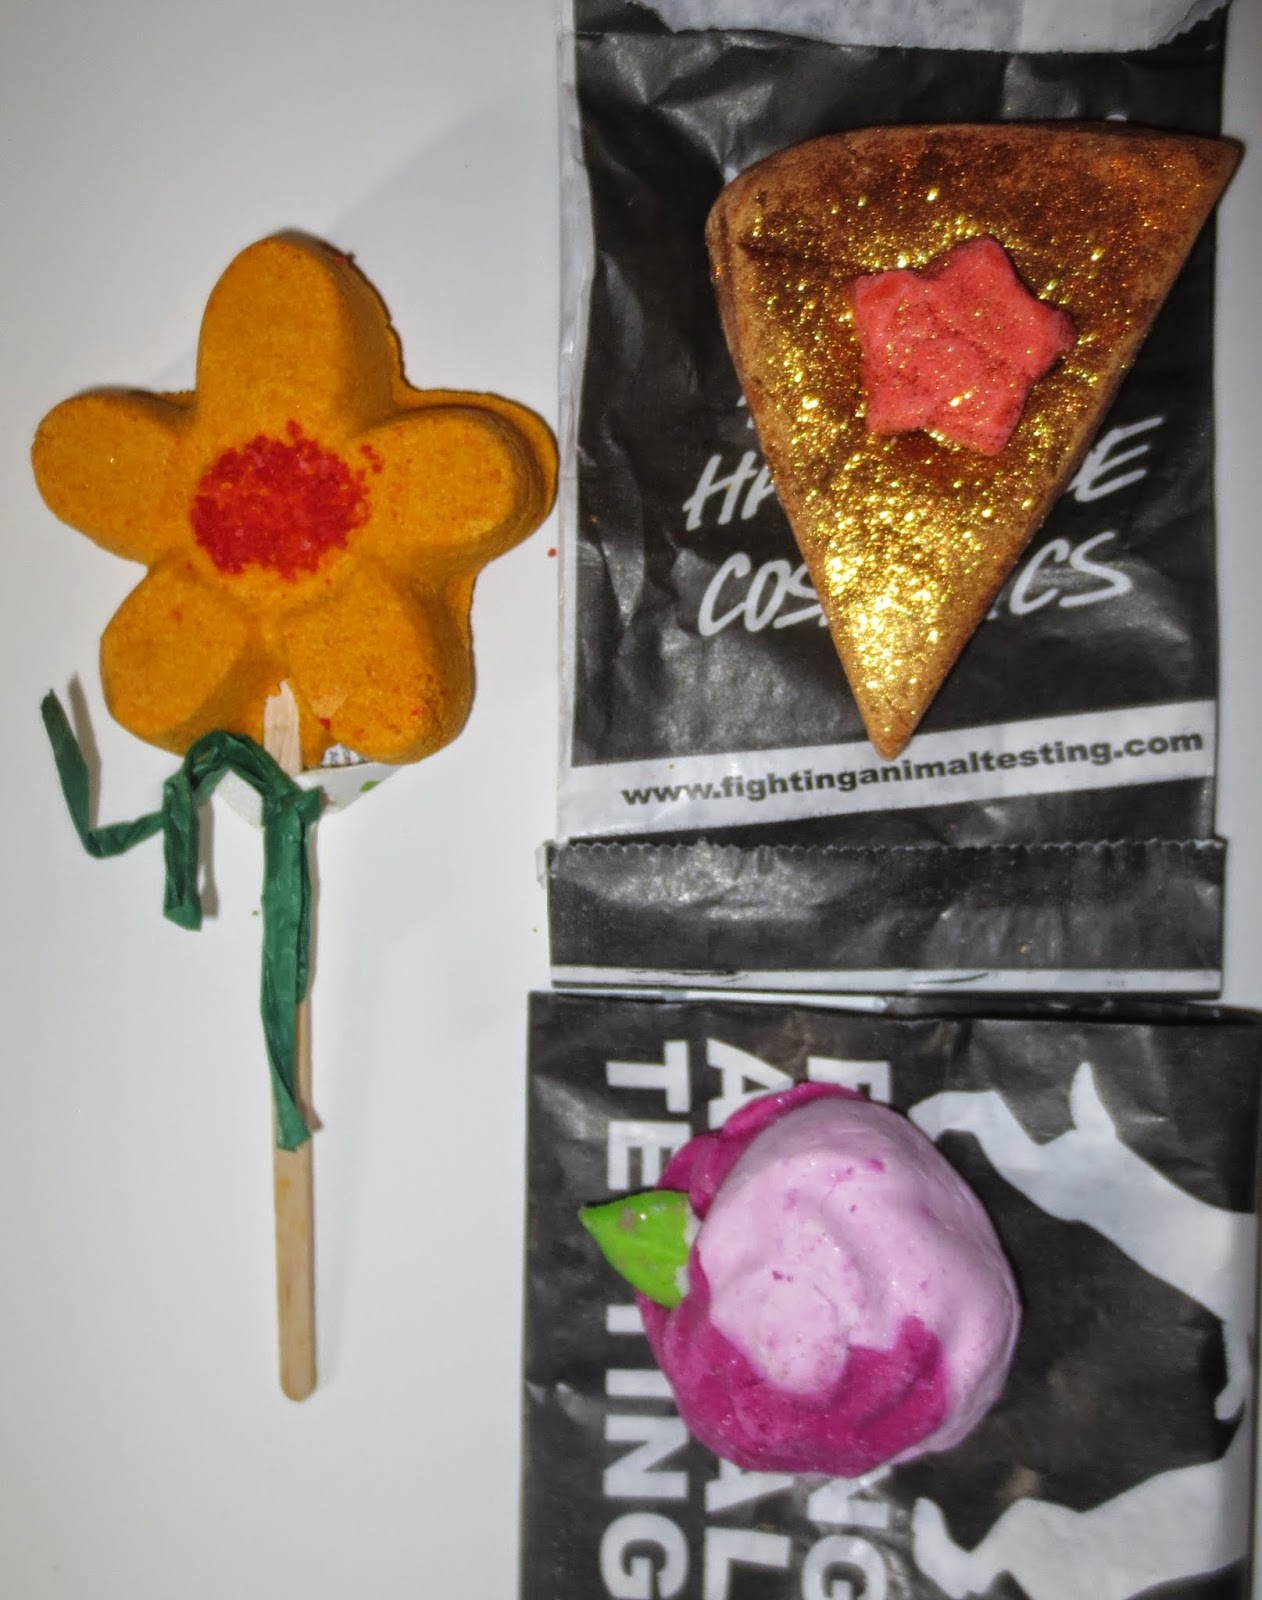 Lush Mother's Day 2014